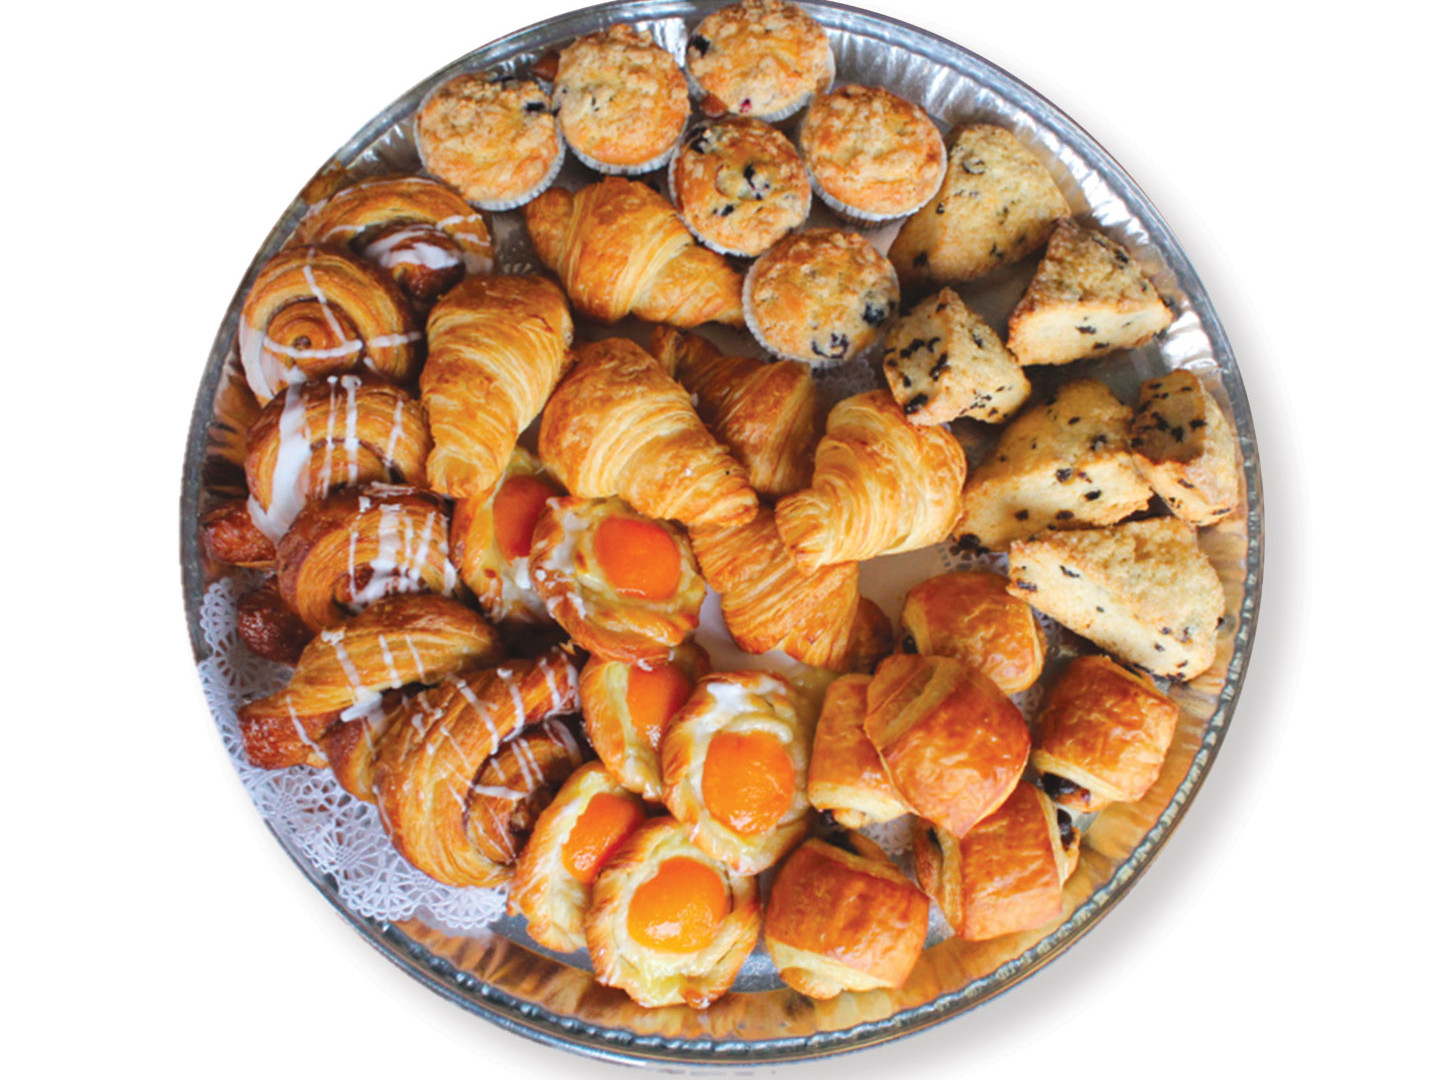 feast-Catering-Local-Pastry-Platter-2.jp